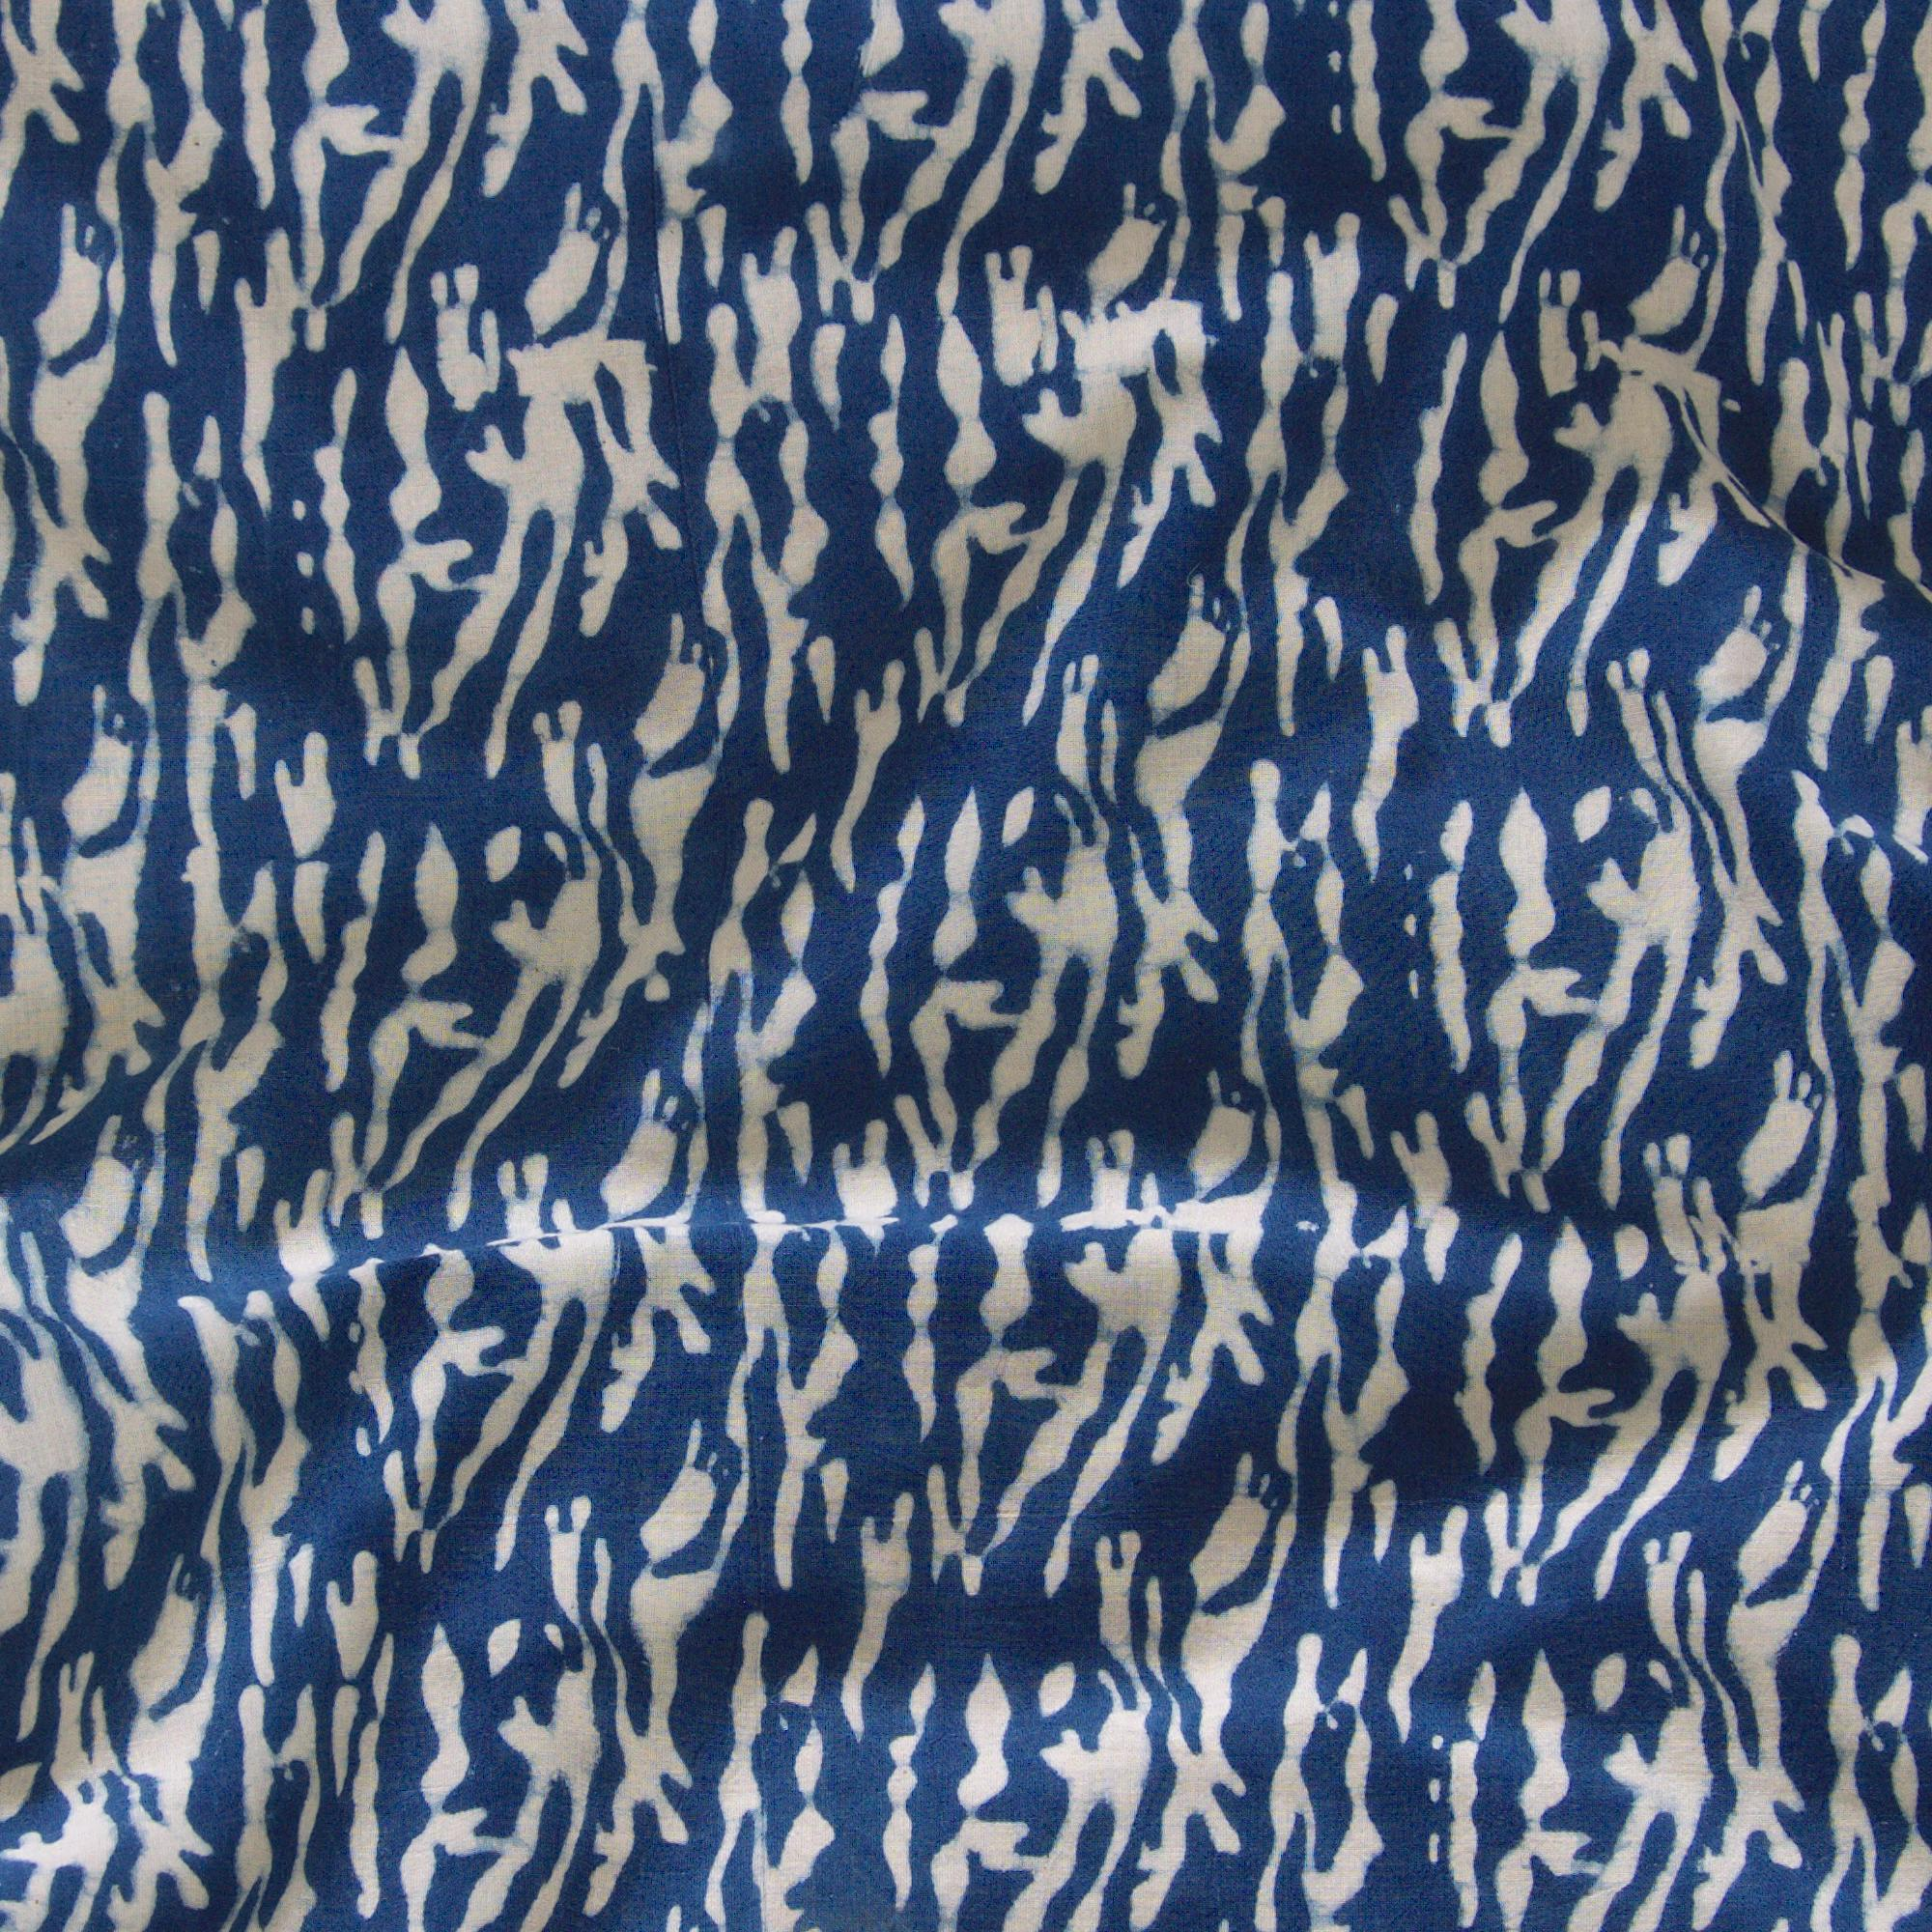 100% Block-Printed Cotton Fabric from India - Ajrak - Indigo White Tiger Print